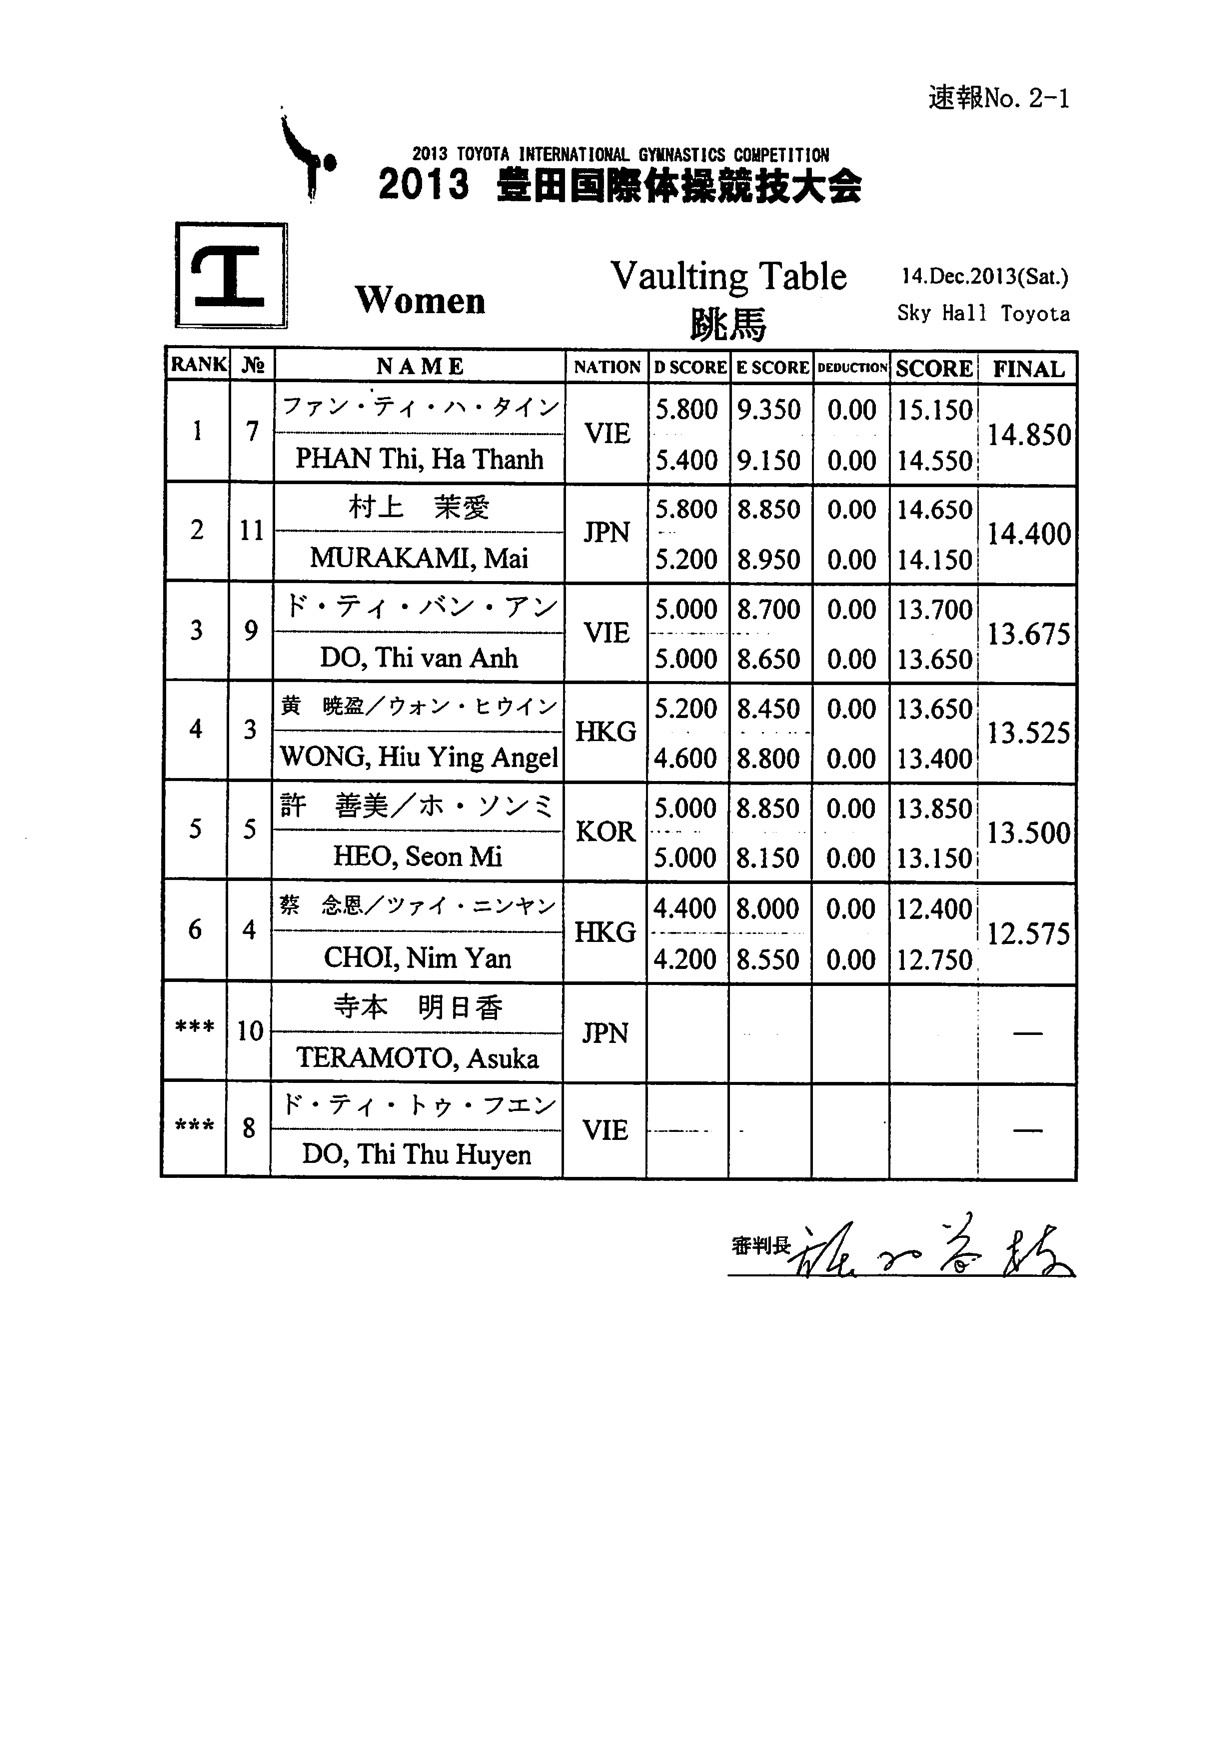 RESULTS: 2013 Toyota Cup